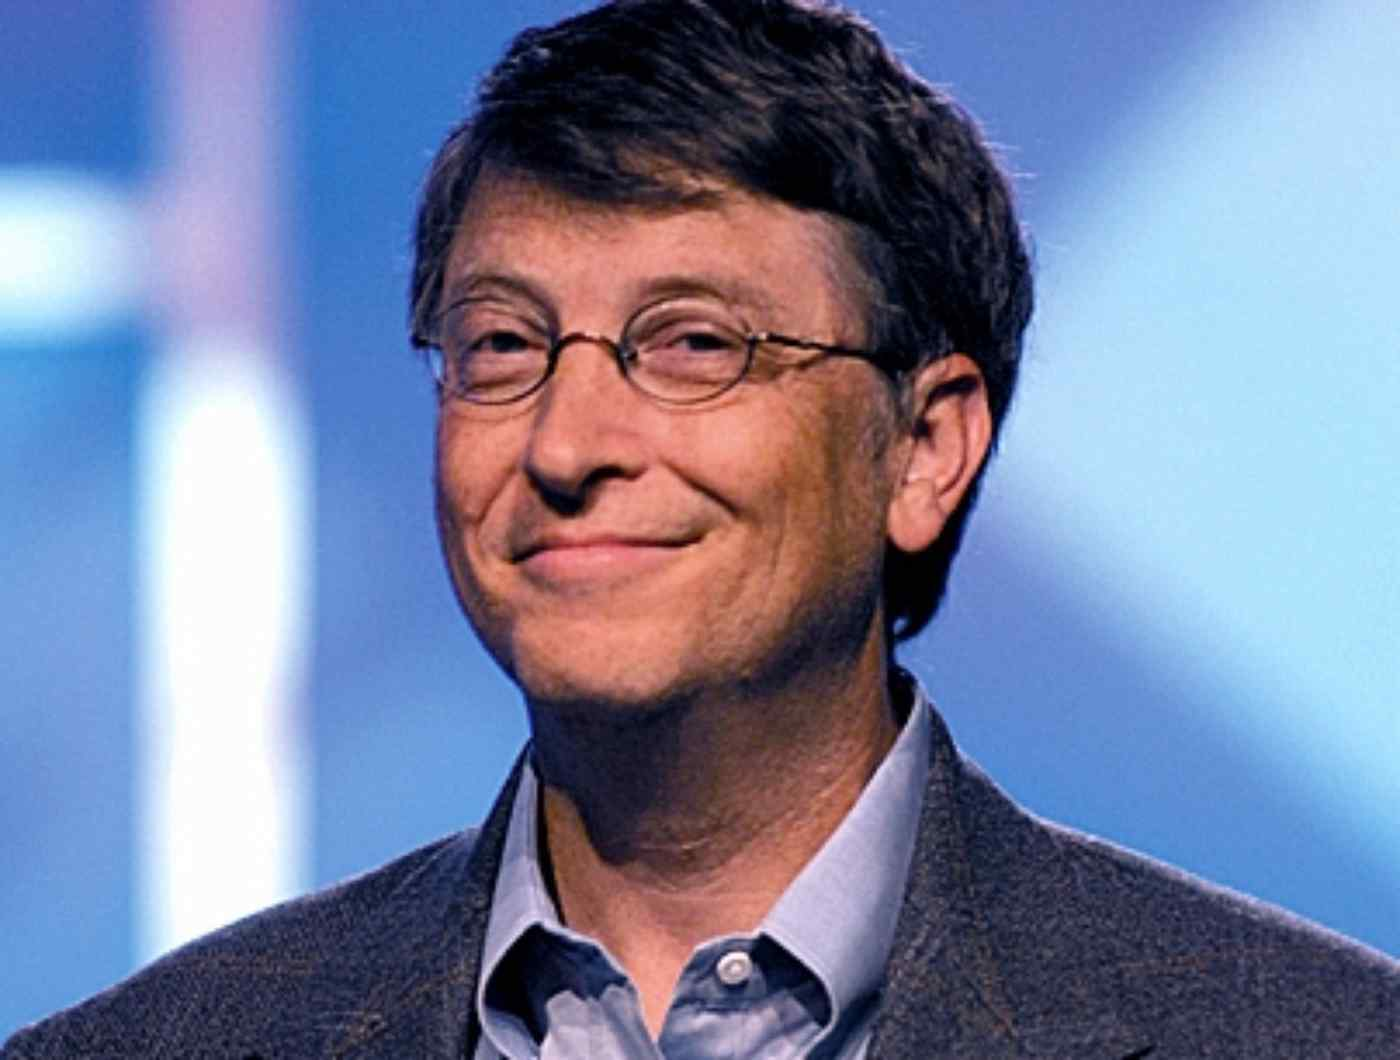 Bill-Gates-mais-rico-dos-eua